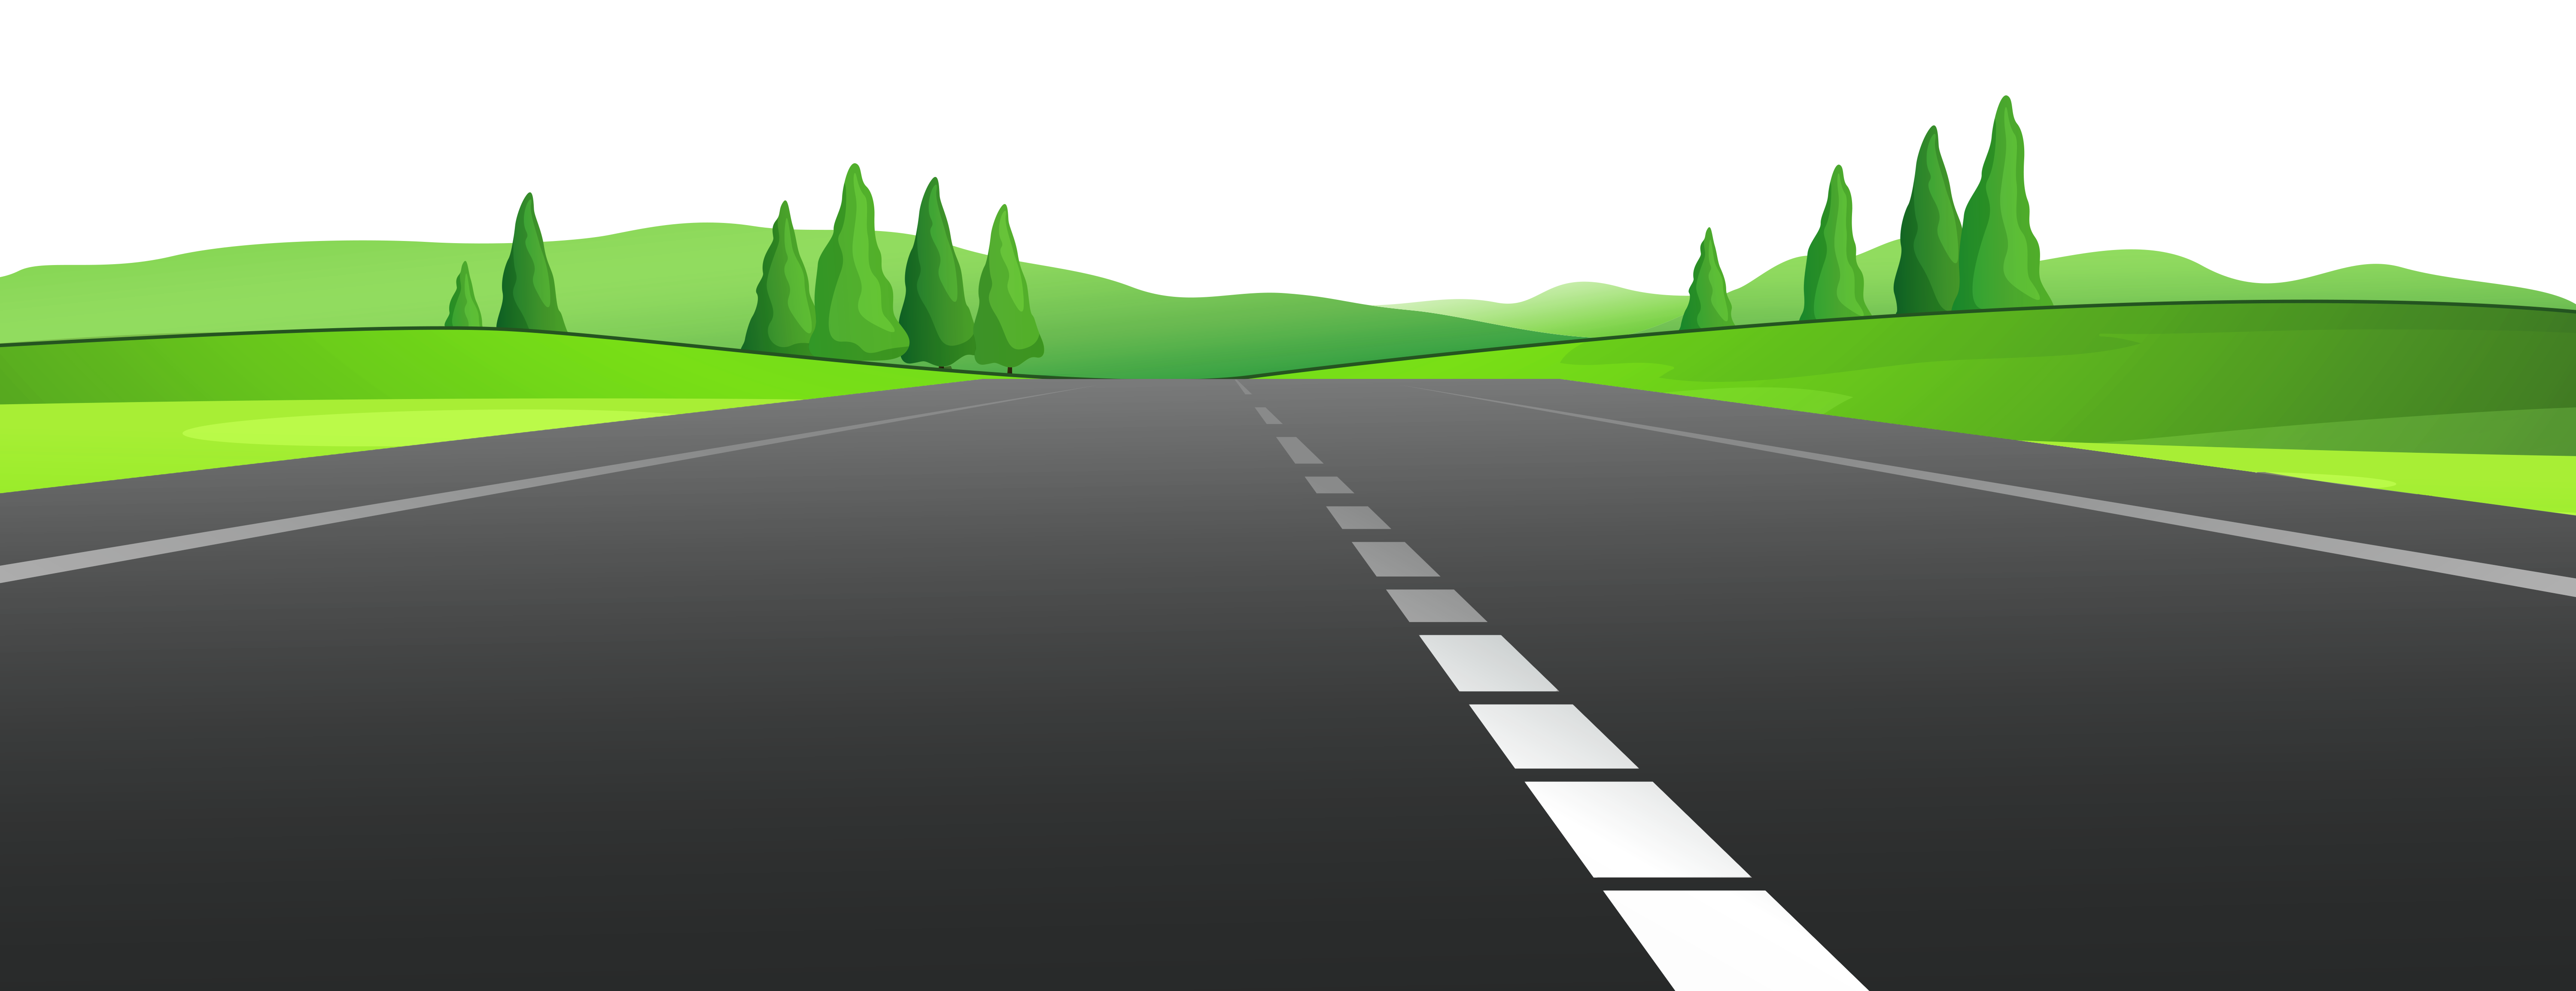 clipart road background